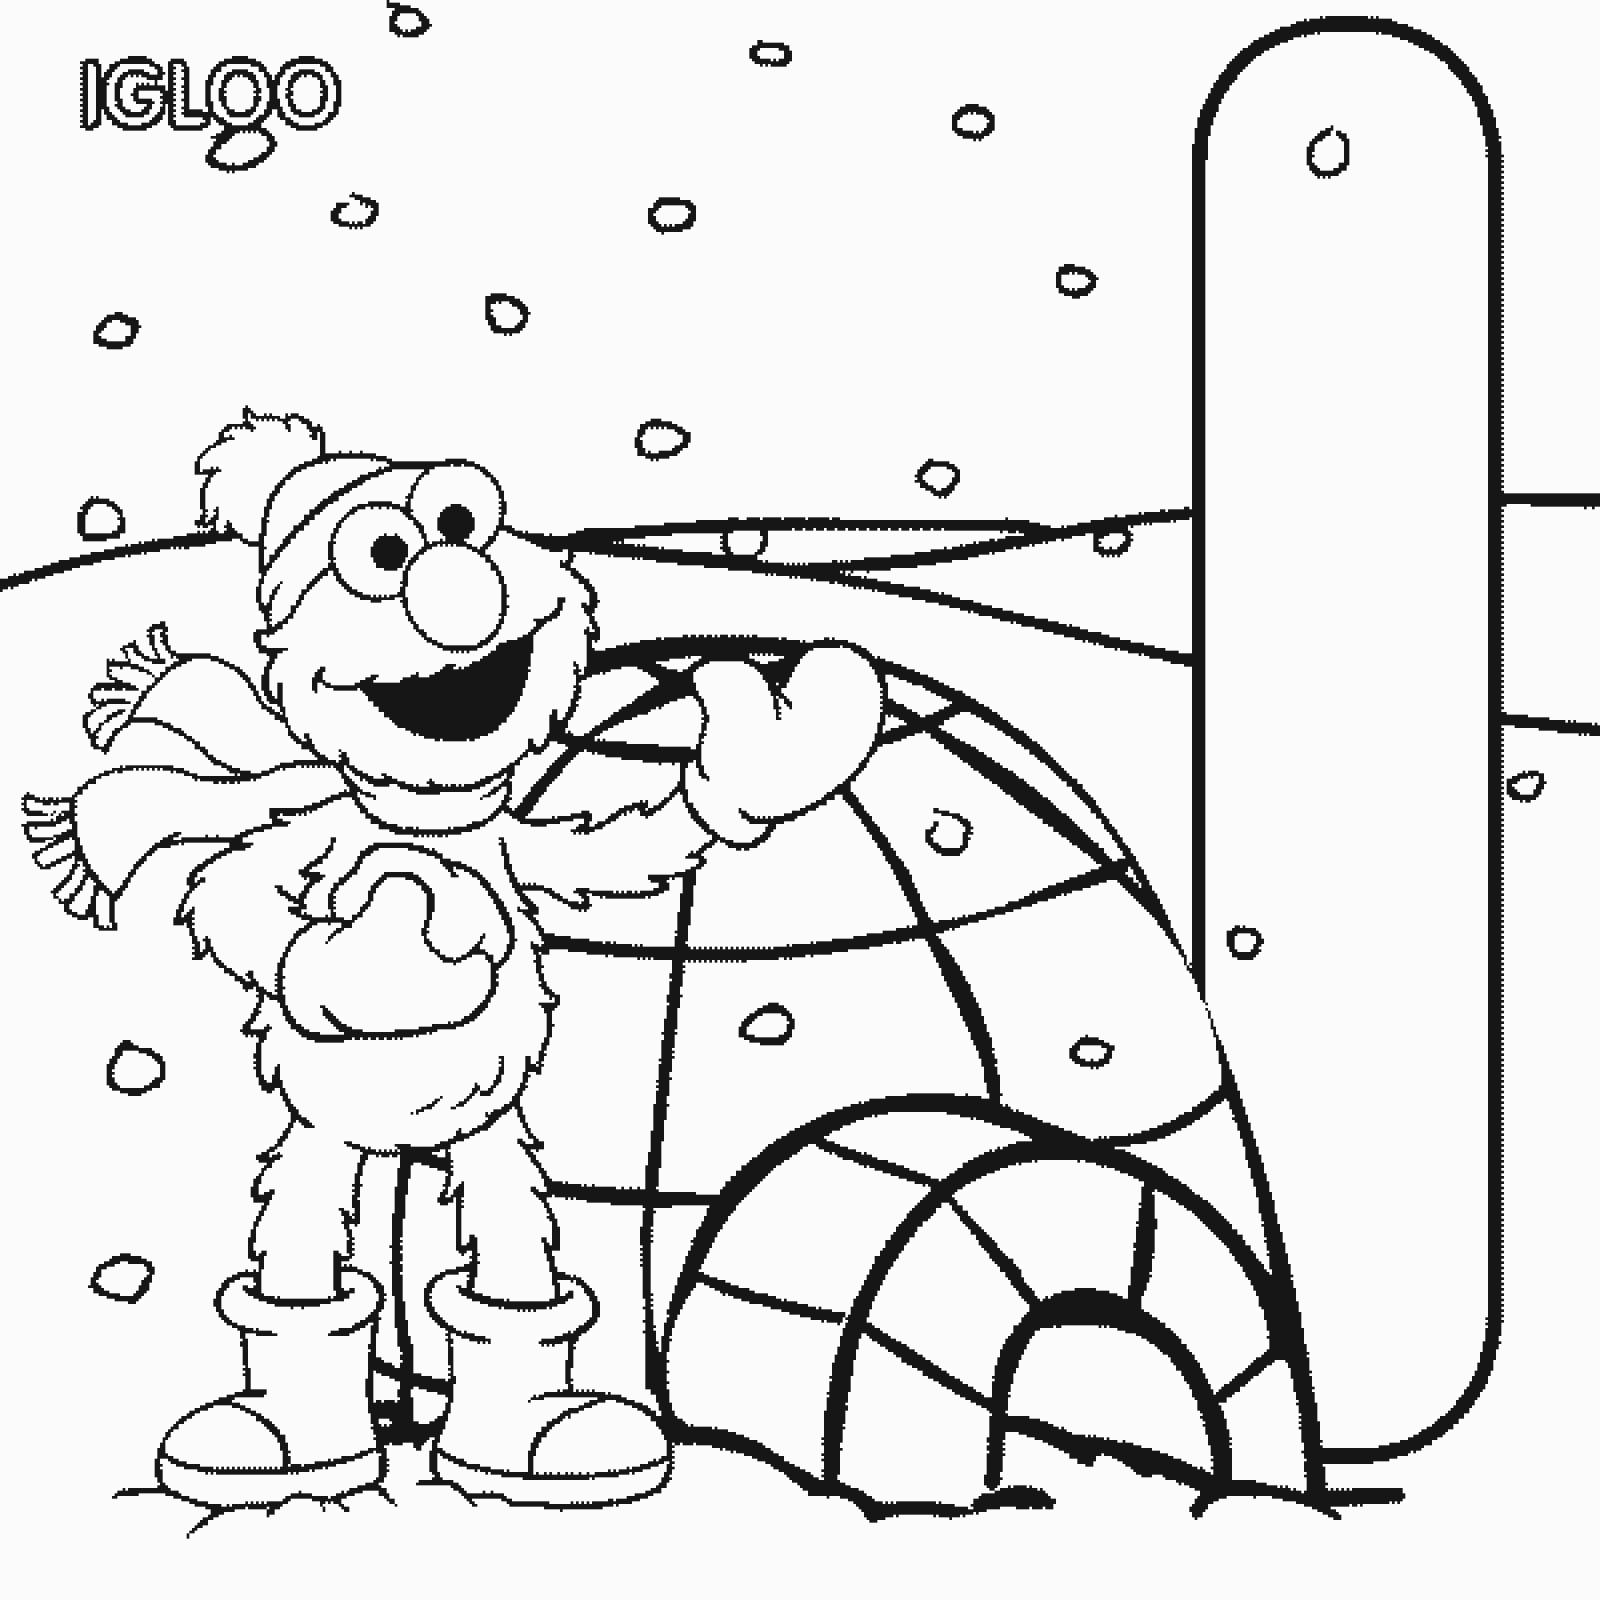 Adult Cute Sesame Street Alphabet Coloring Pages Gallery Images cute elmo alphabet coloring pages az igloo letter i sesame street page gallery images